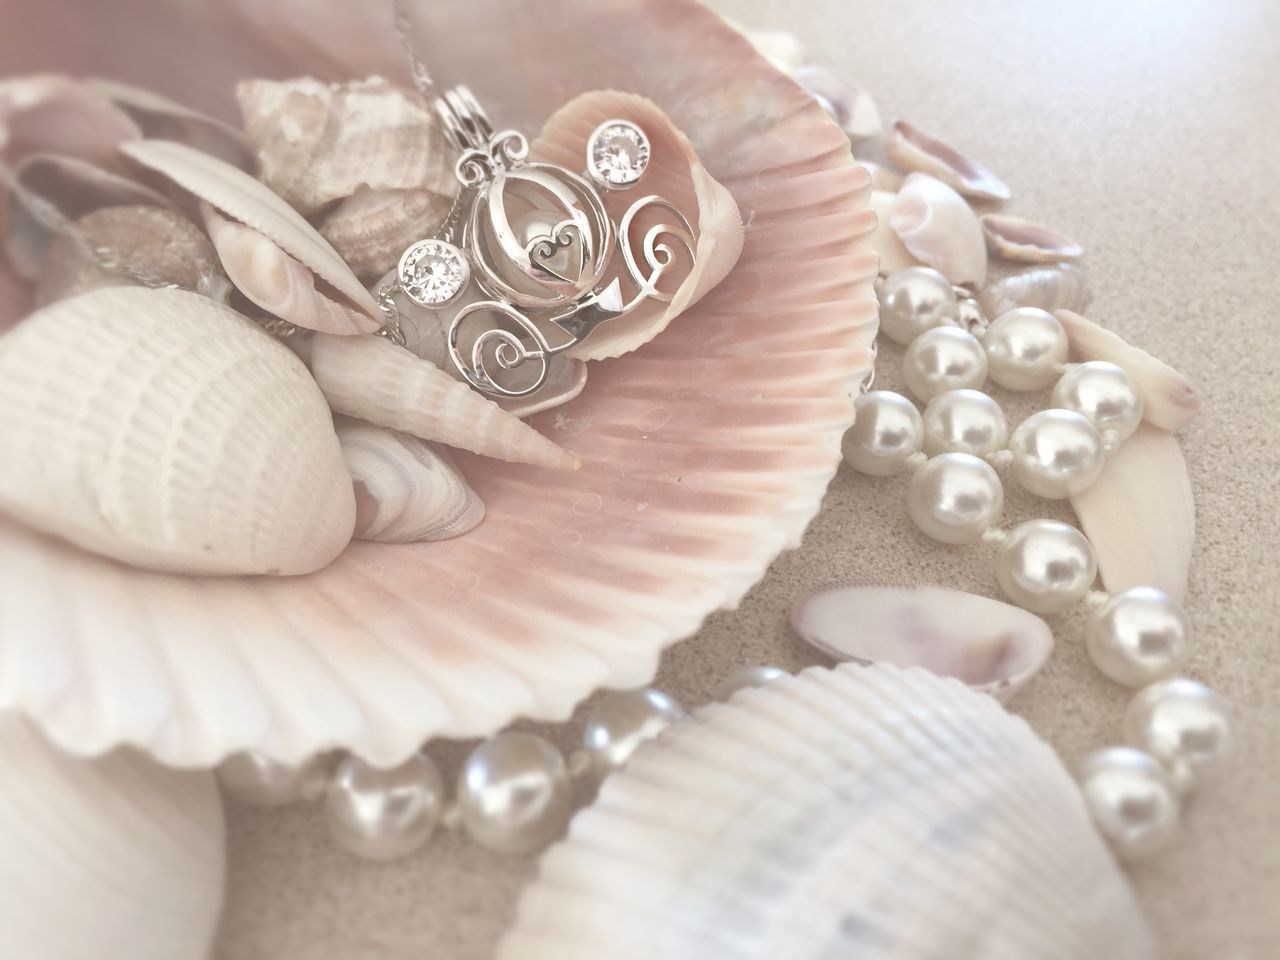 Close-up Cropped Design Focus On Foreground Jewellery Jewelry Lifestyles Part Of Pearls Ring Selective Focus Shells Still Life